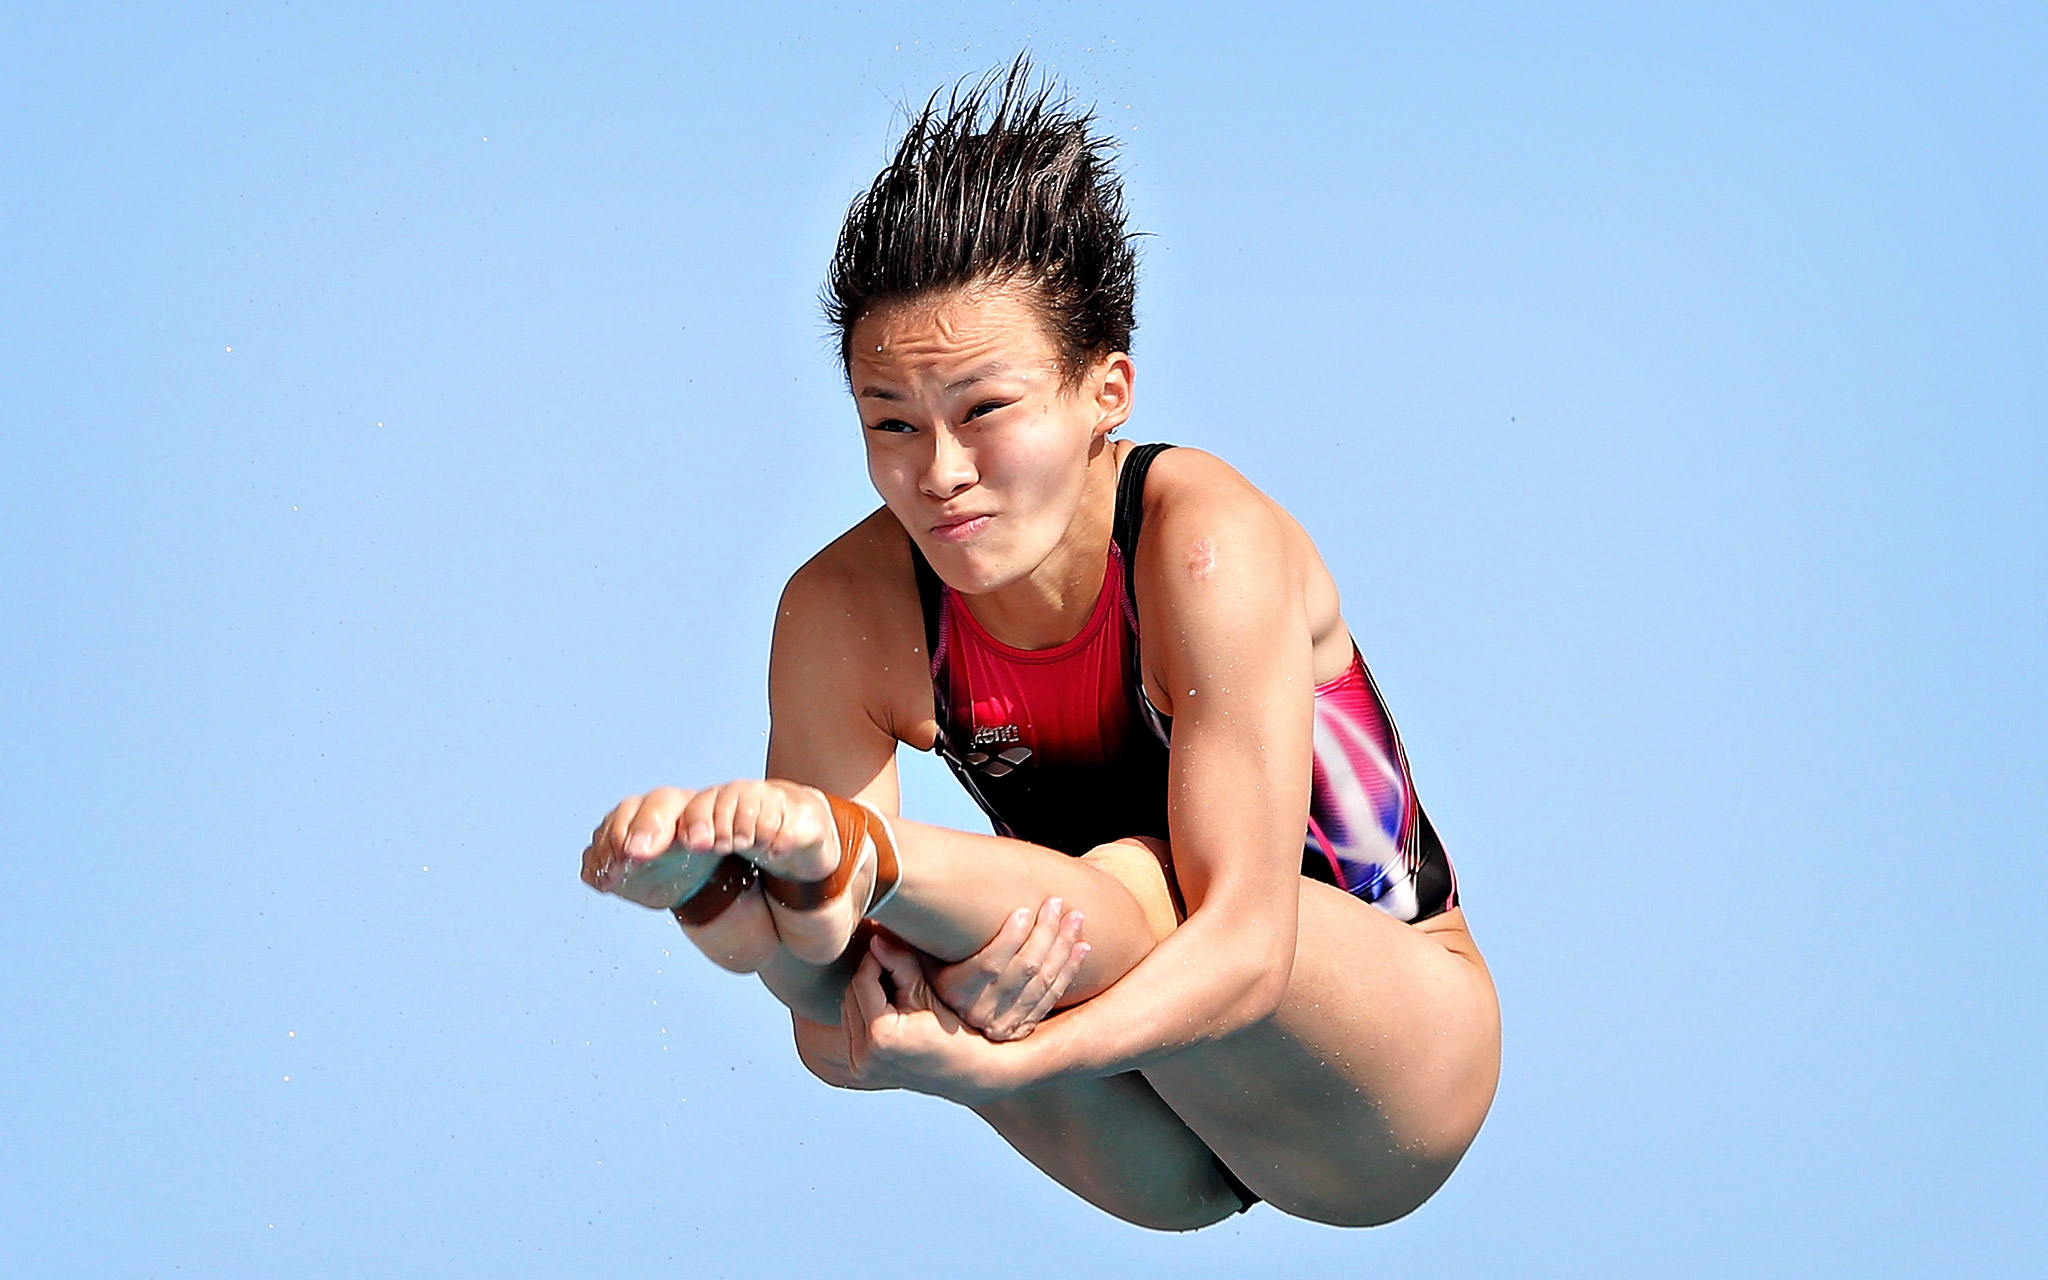 Yan Yee Ng of Malaysia competes in the women's 3-meter springboard final during Day 6 of the 19th FINA Diving World Cup at the Oriental Sports Center in Shanghai.